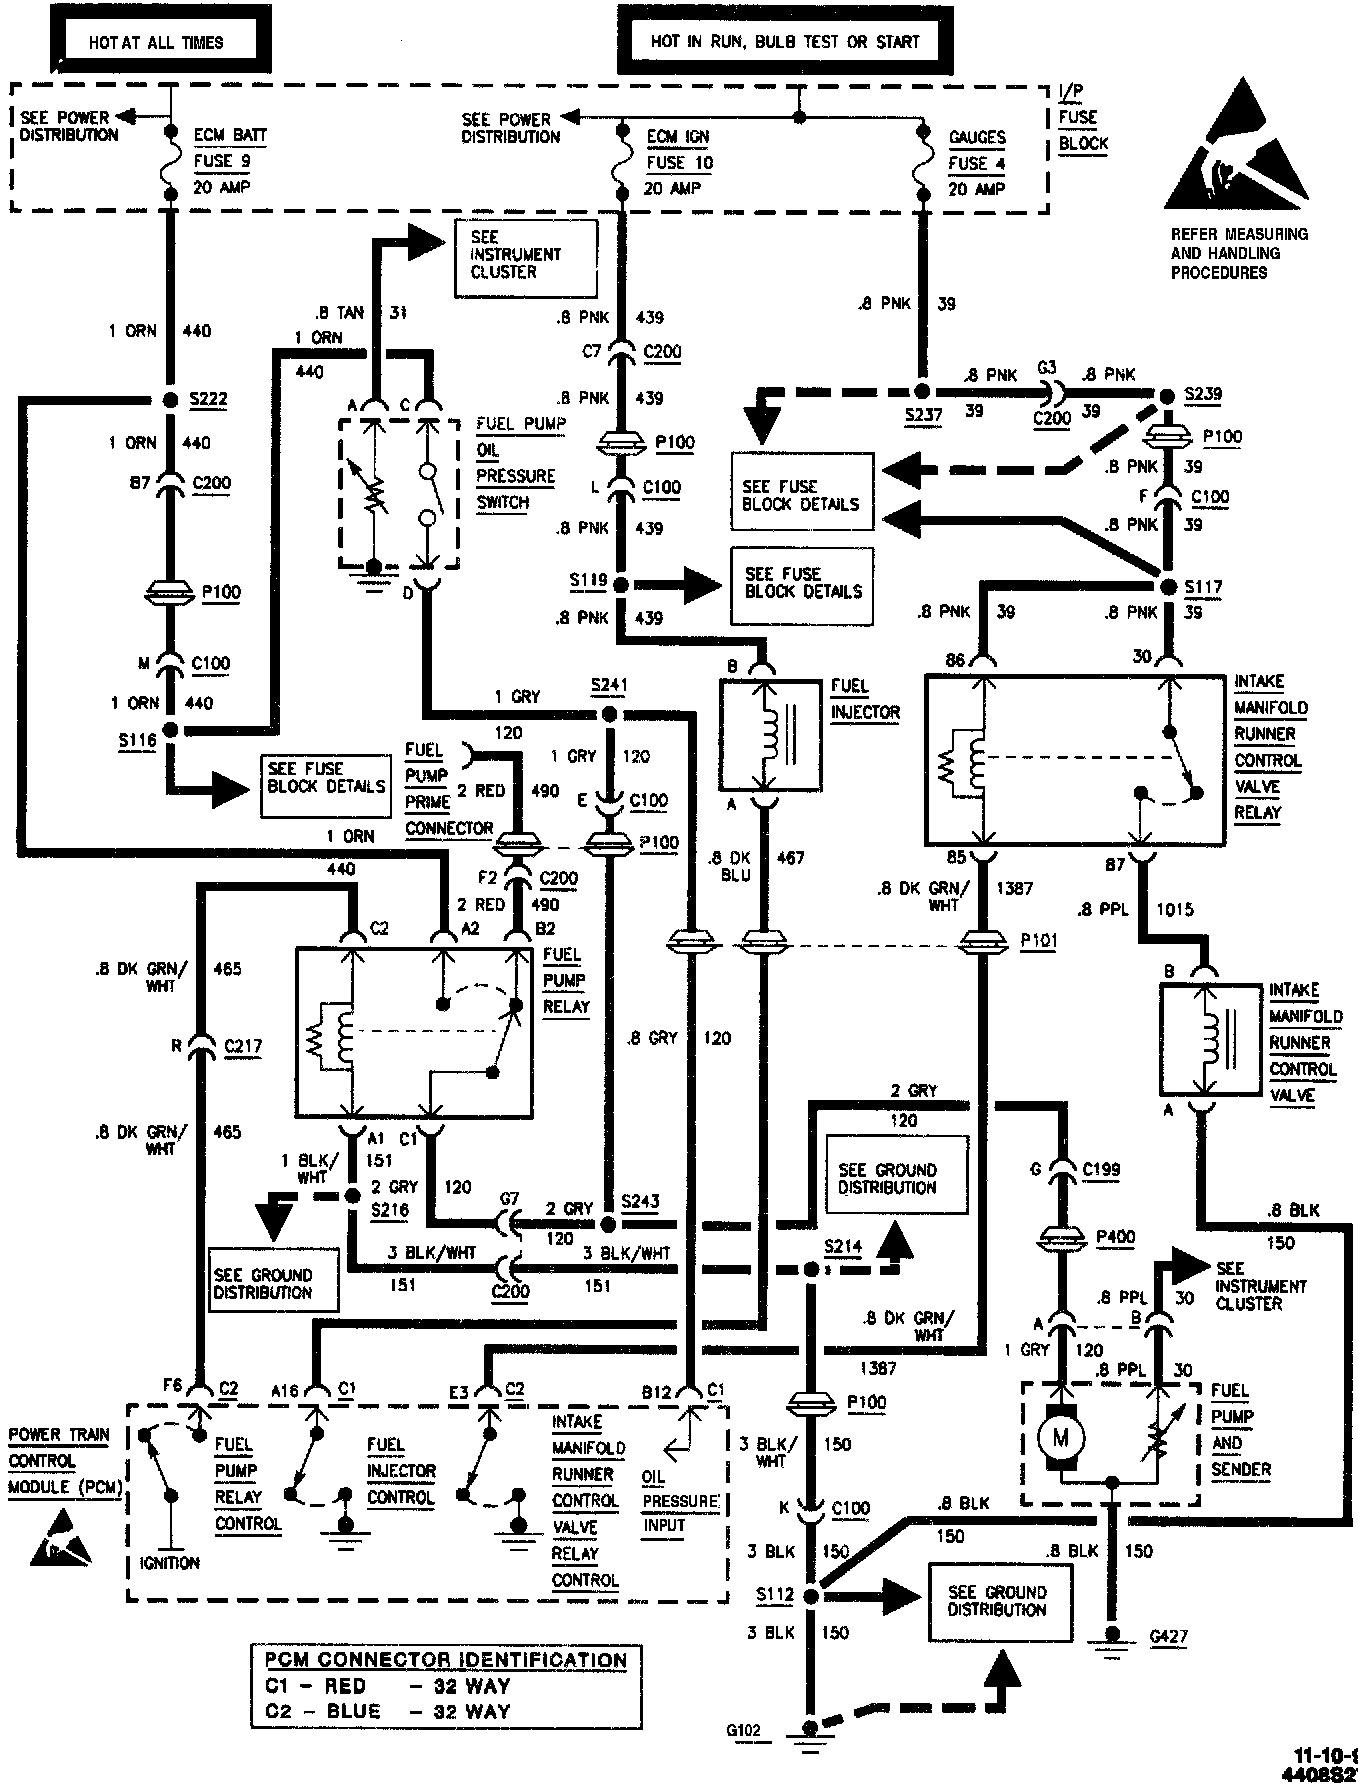 wiring diagram for 1999 chevy s 10 wiring diagram inside1999 chevrolet s10 wiring  diagram wiring diagram